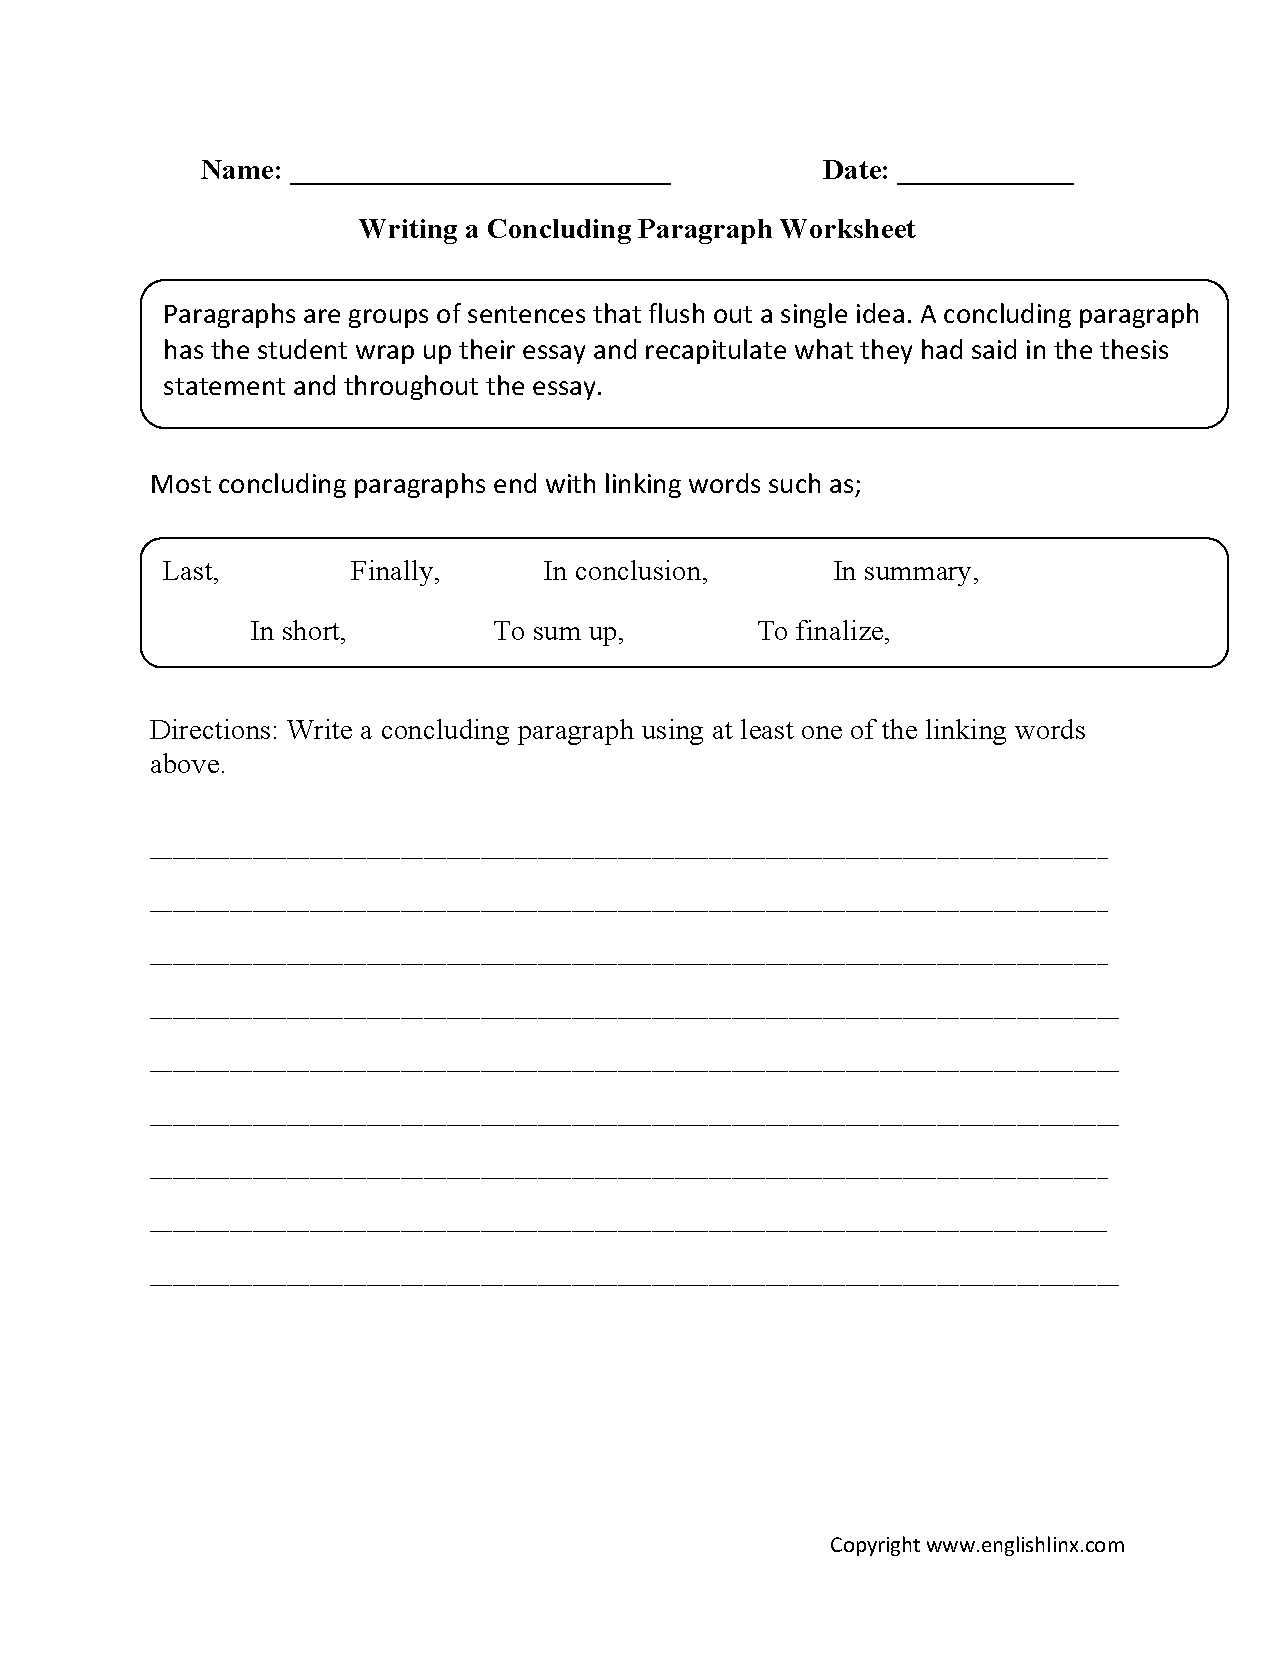 Paragraph Writing Worksheets – Writing a Paragraph Worksheet